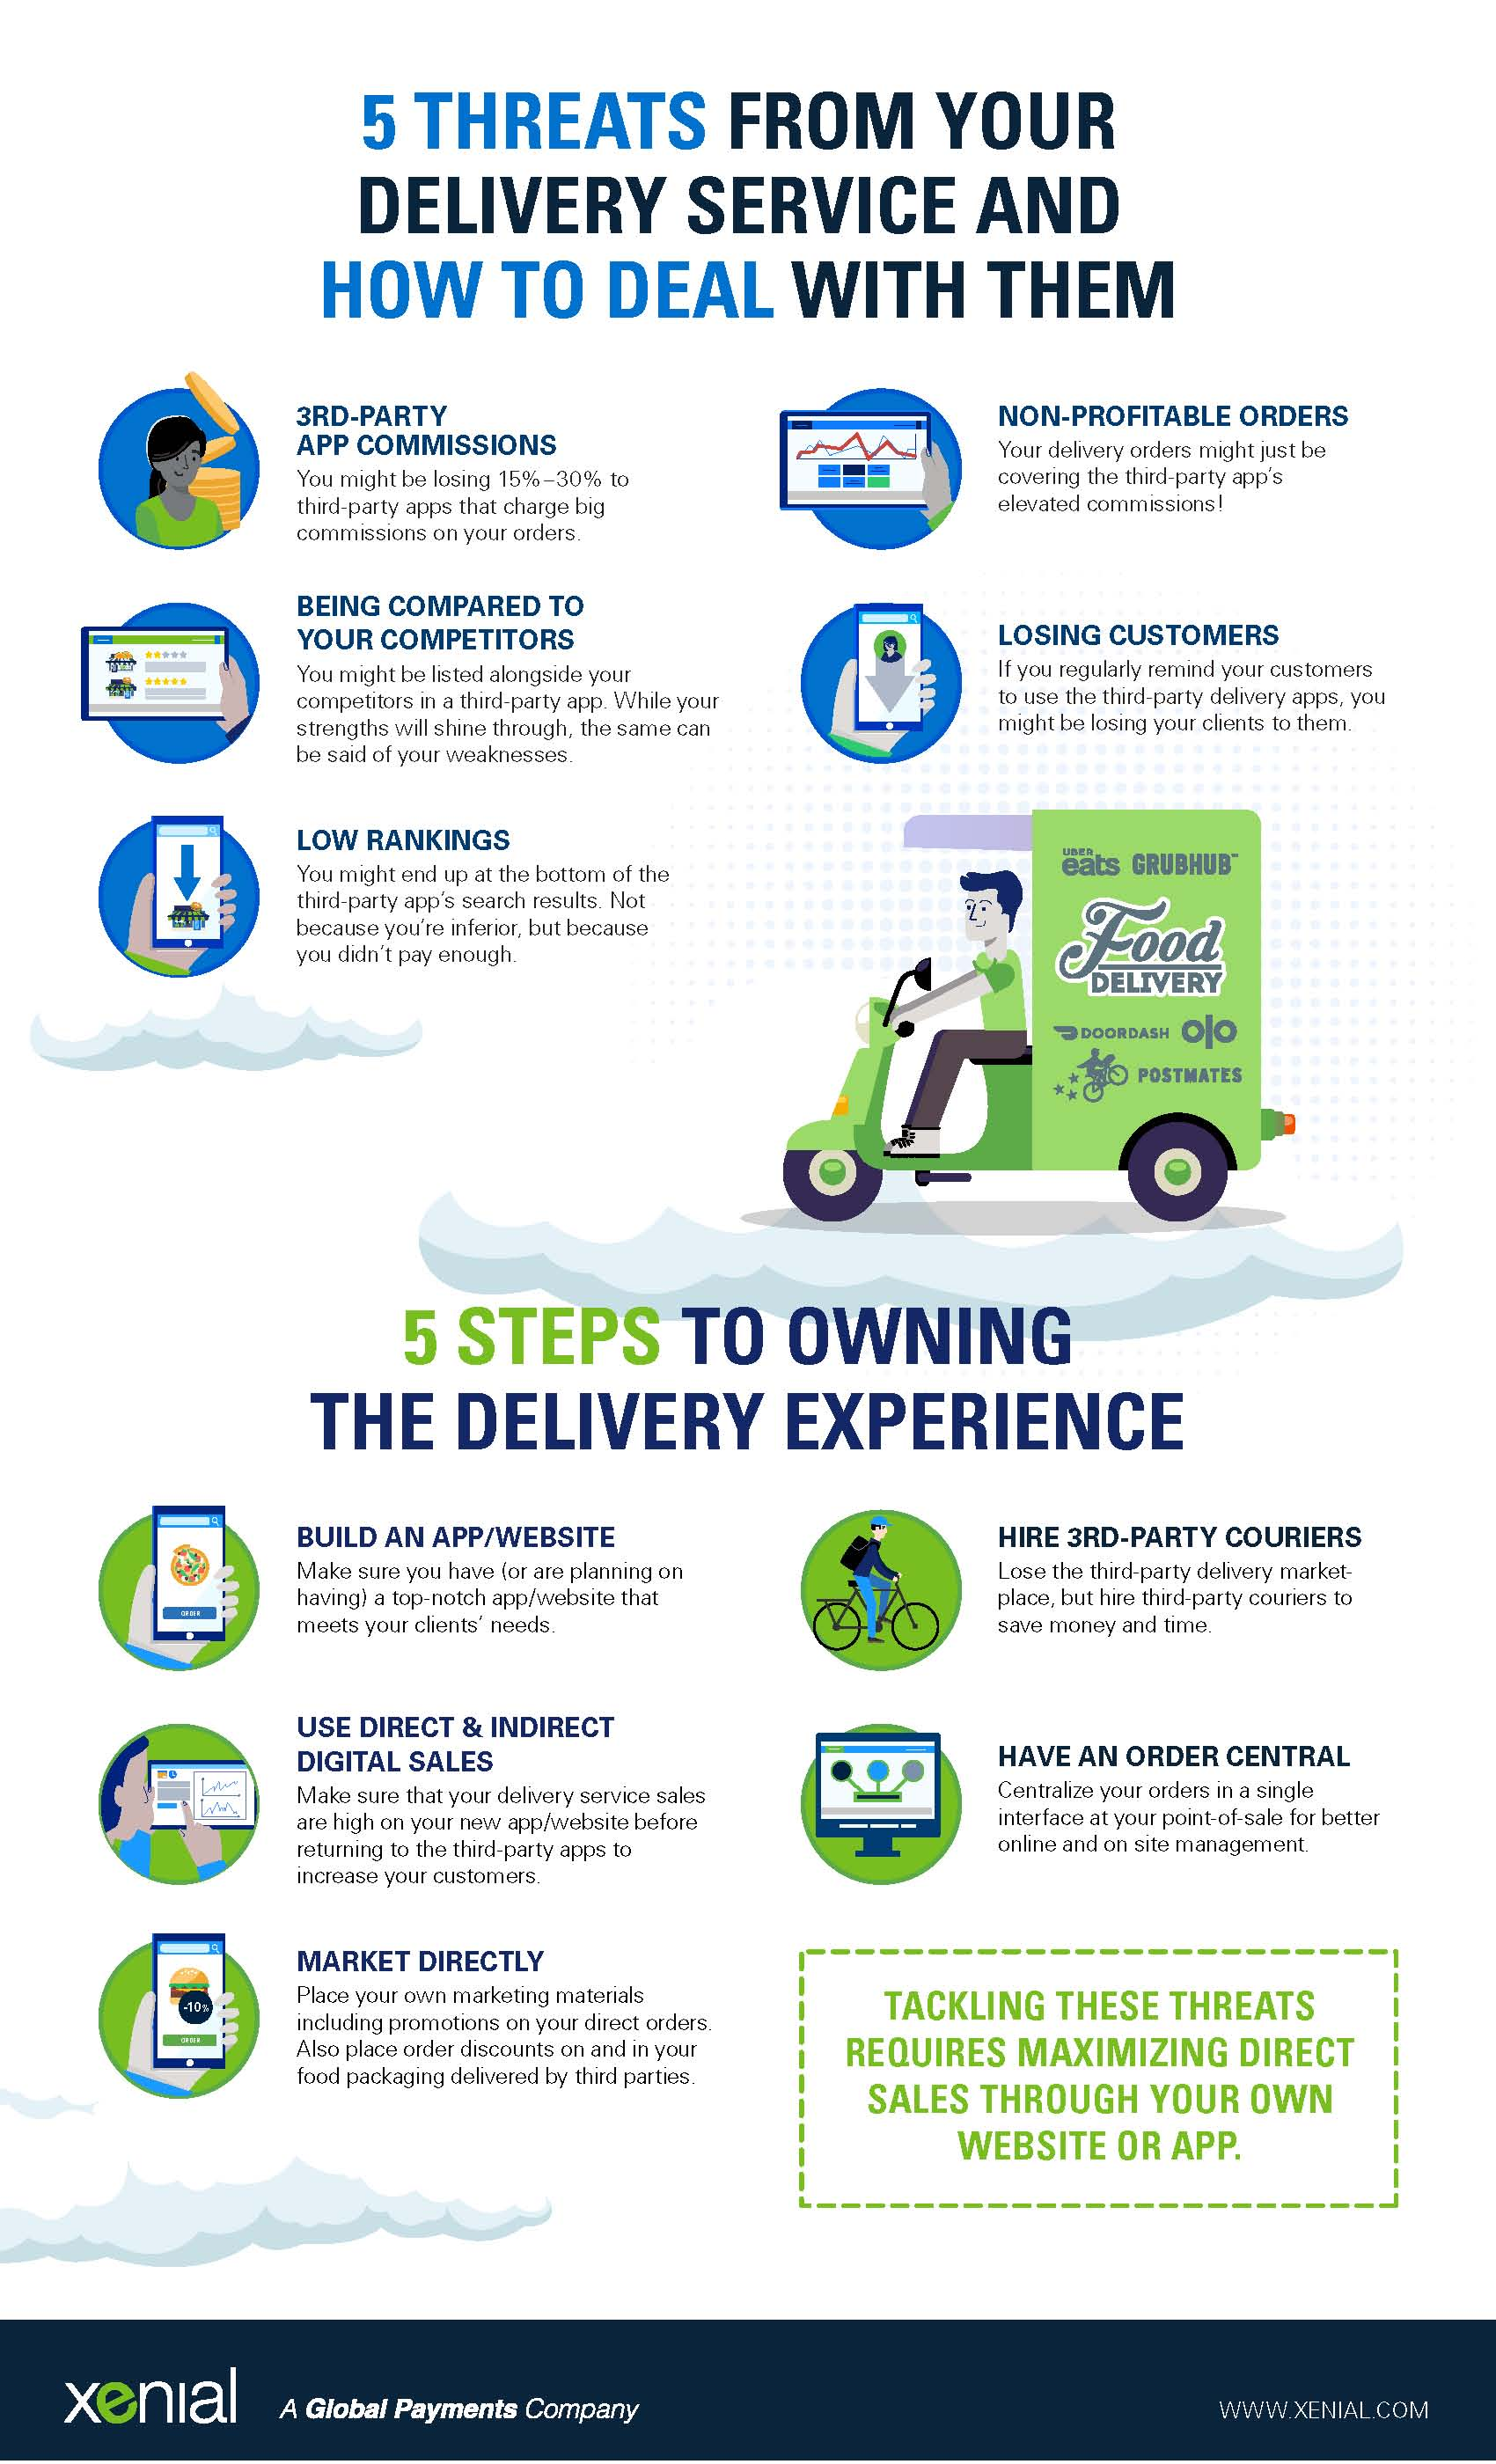 Xenial_5-Threats-from-Delivery_Infographic.jpg